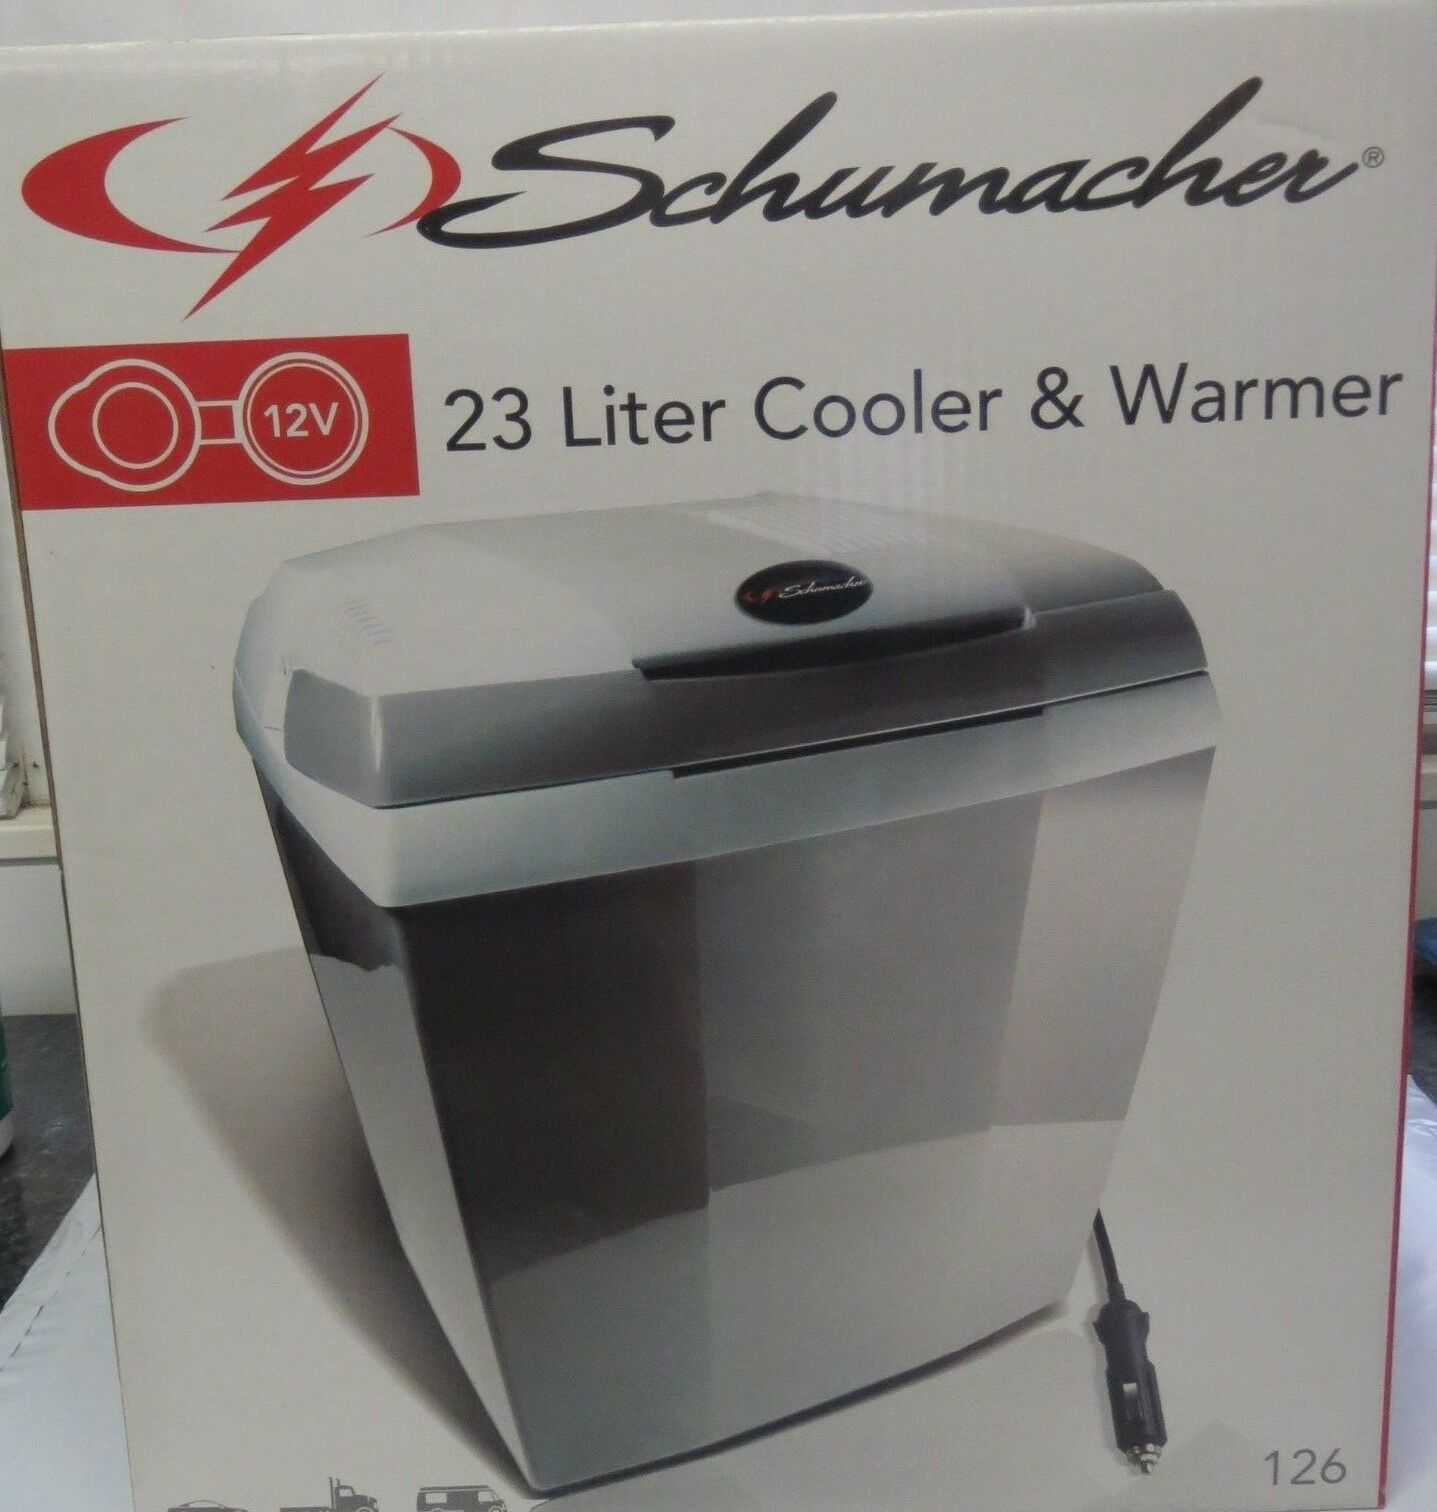 Schumacher 126 12V Cooler and Warmer - 23 Liter Capacity....NEW OTHER